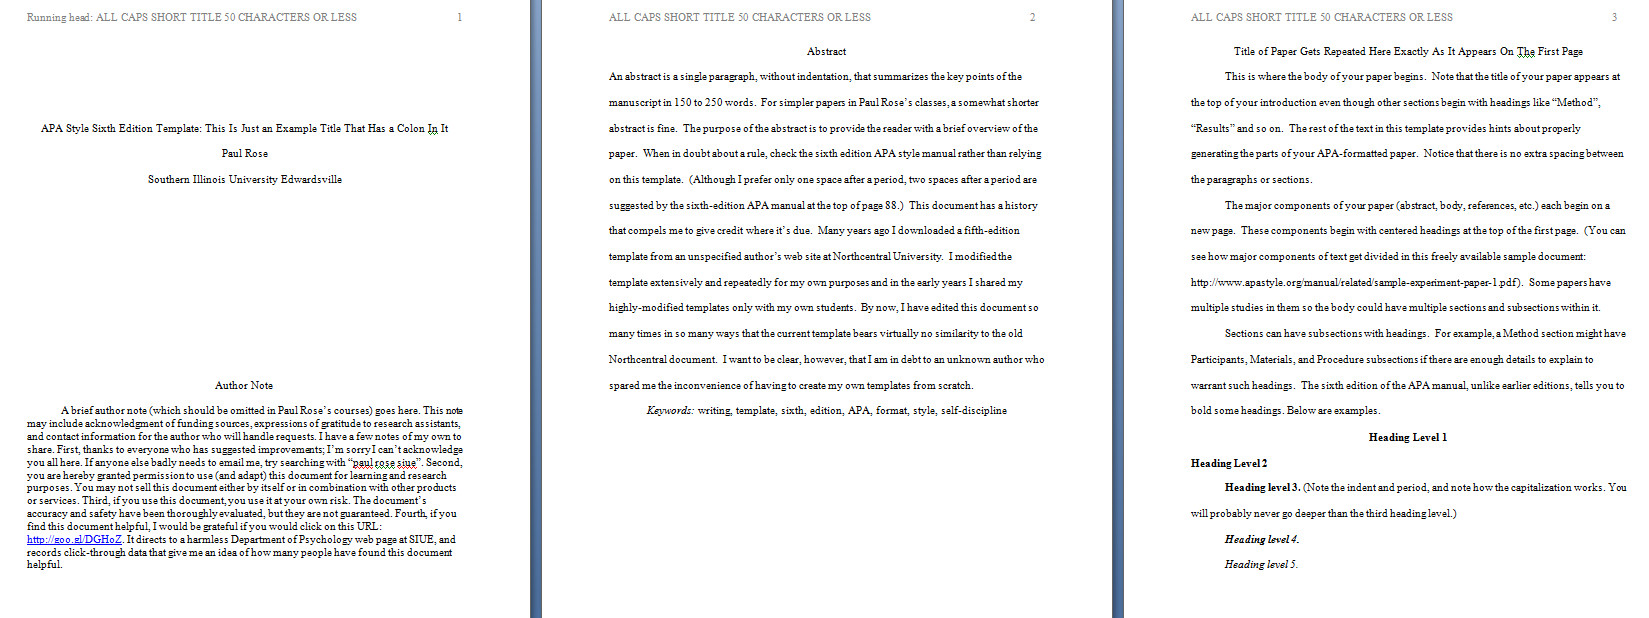 002 Apa Format Essay Template Preview Stupendous Papers Examples Word 2010 Full